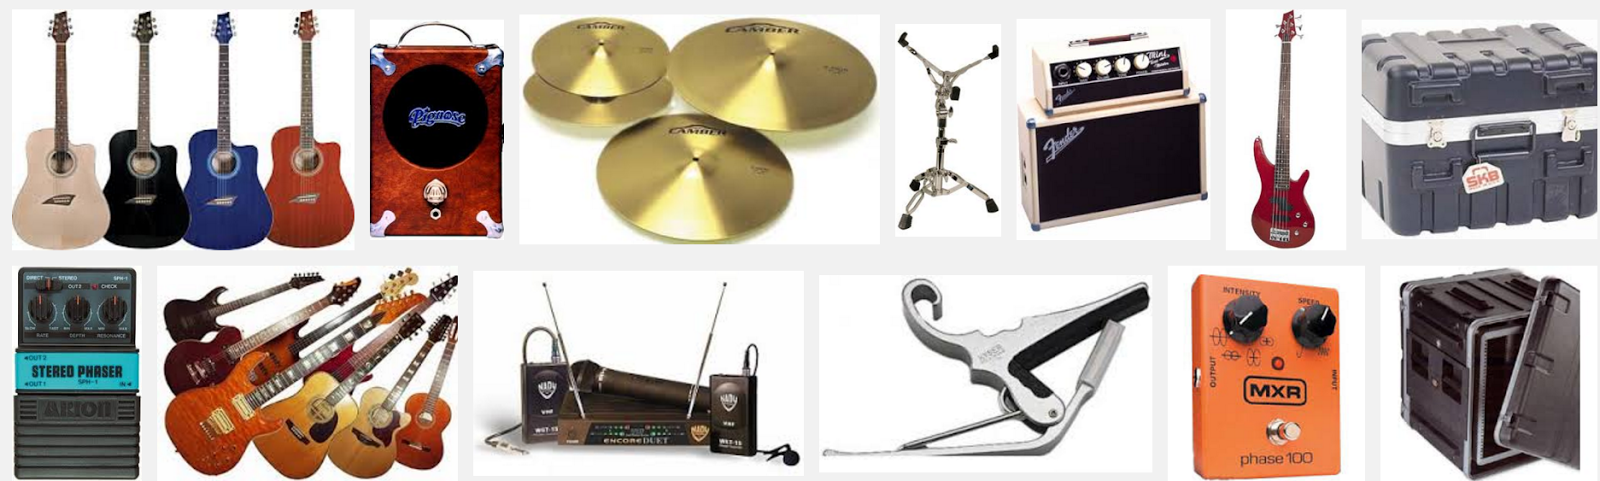 Music Instrument Distributors in the United States